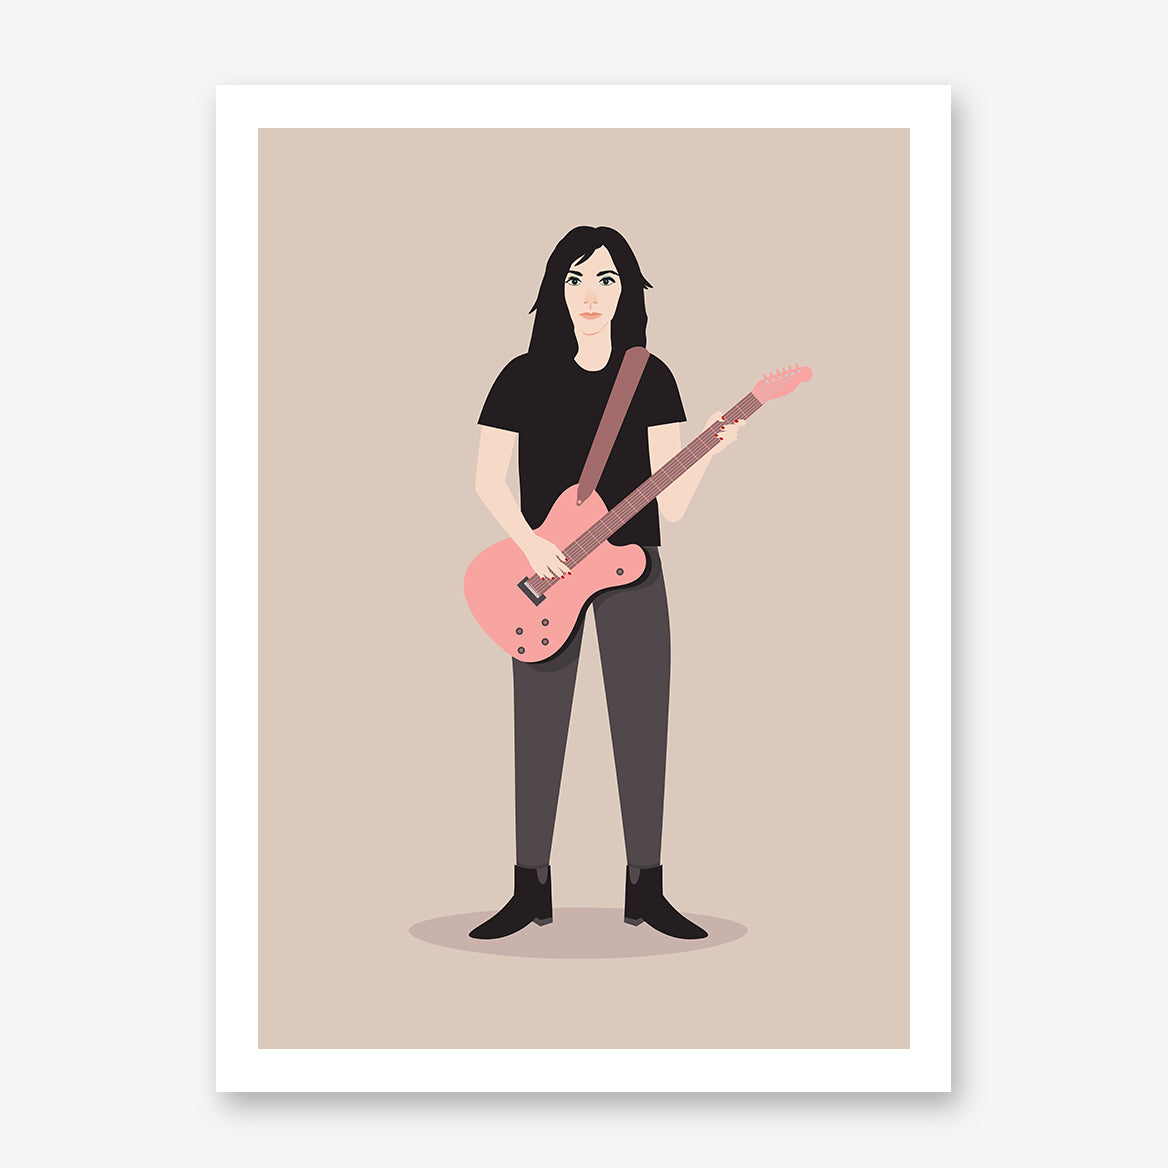 Celebrity illustration print by Judy Kaufmann, with PJ Harvey holding a pink guitar, on light brown background.